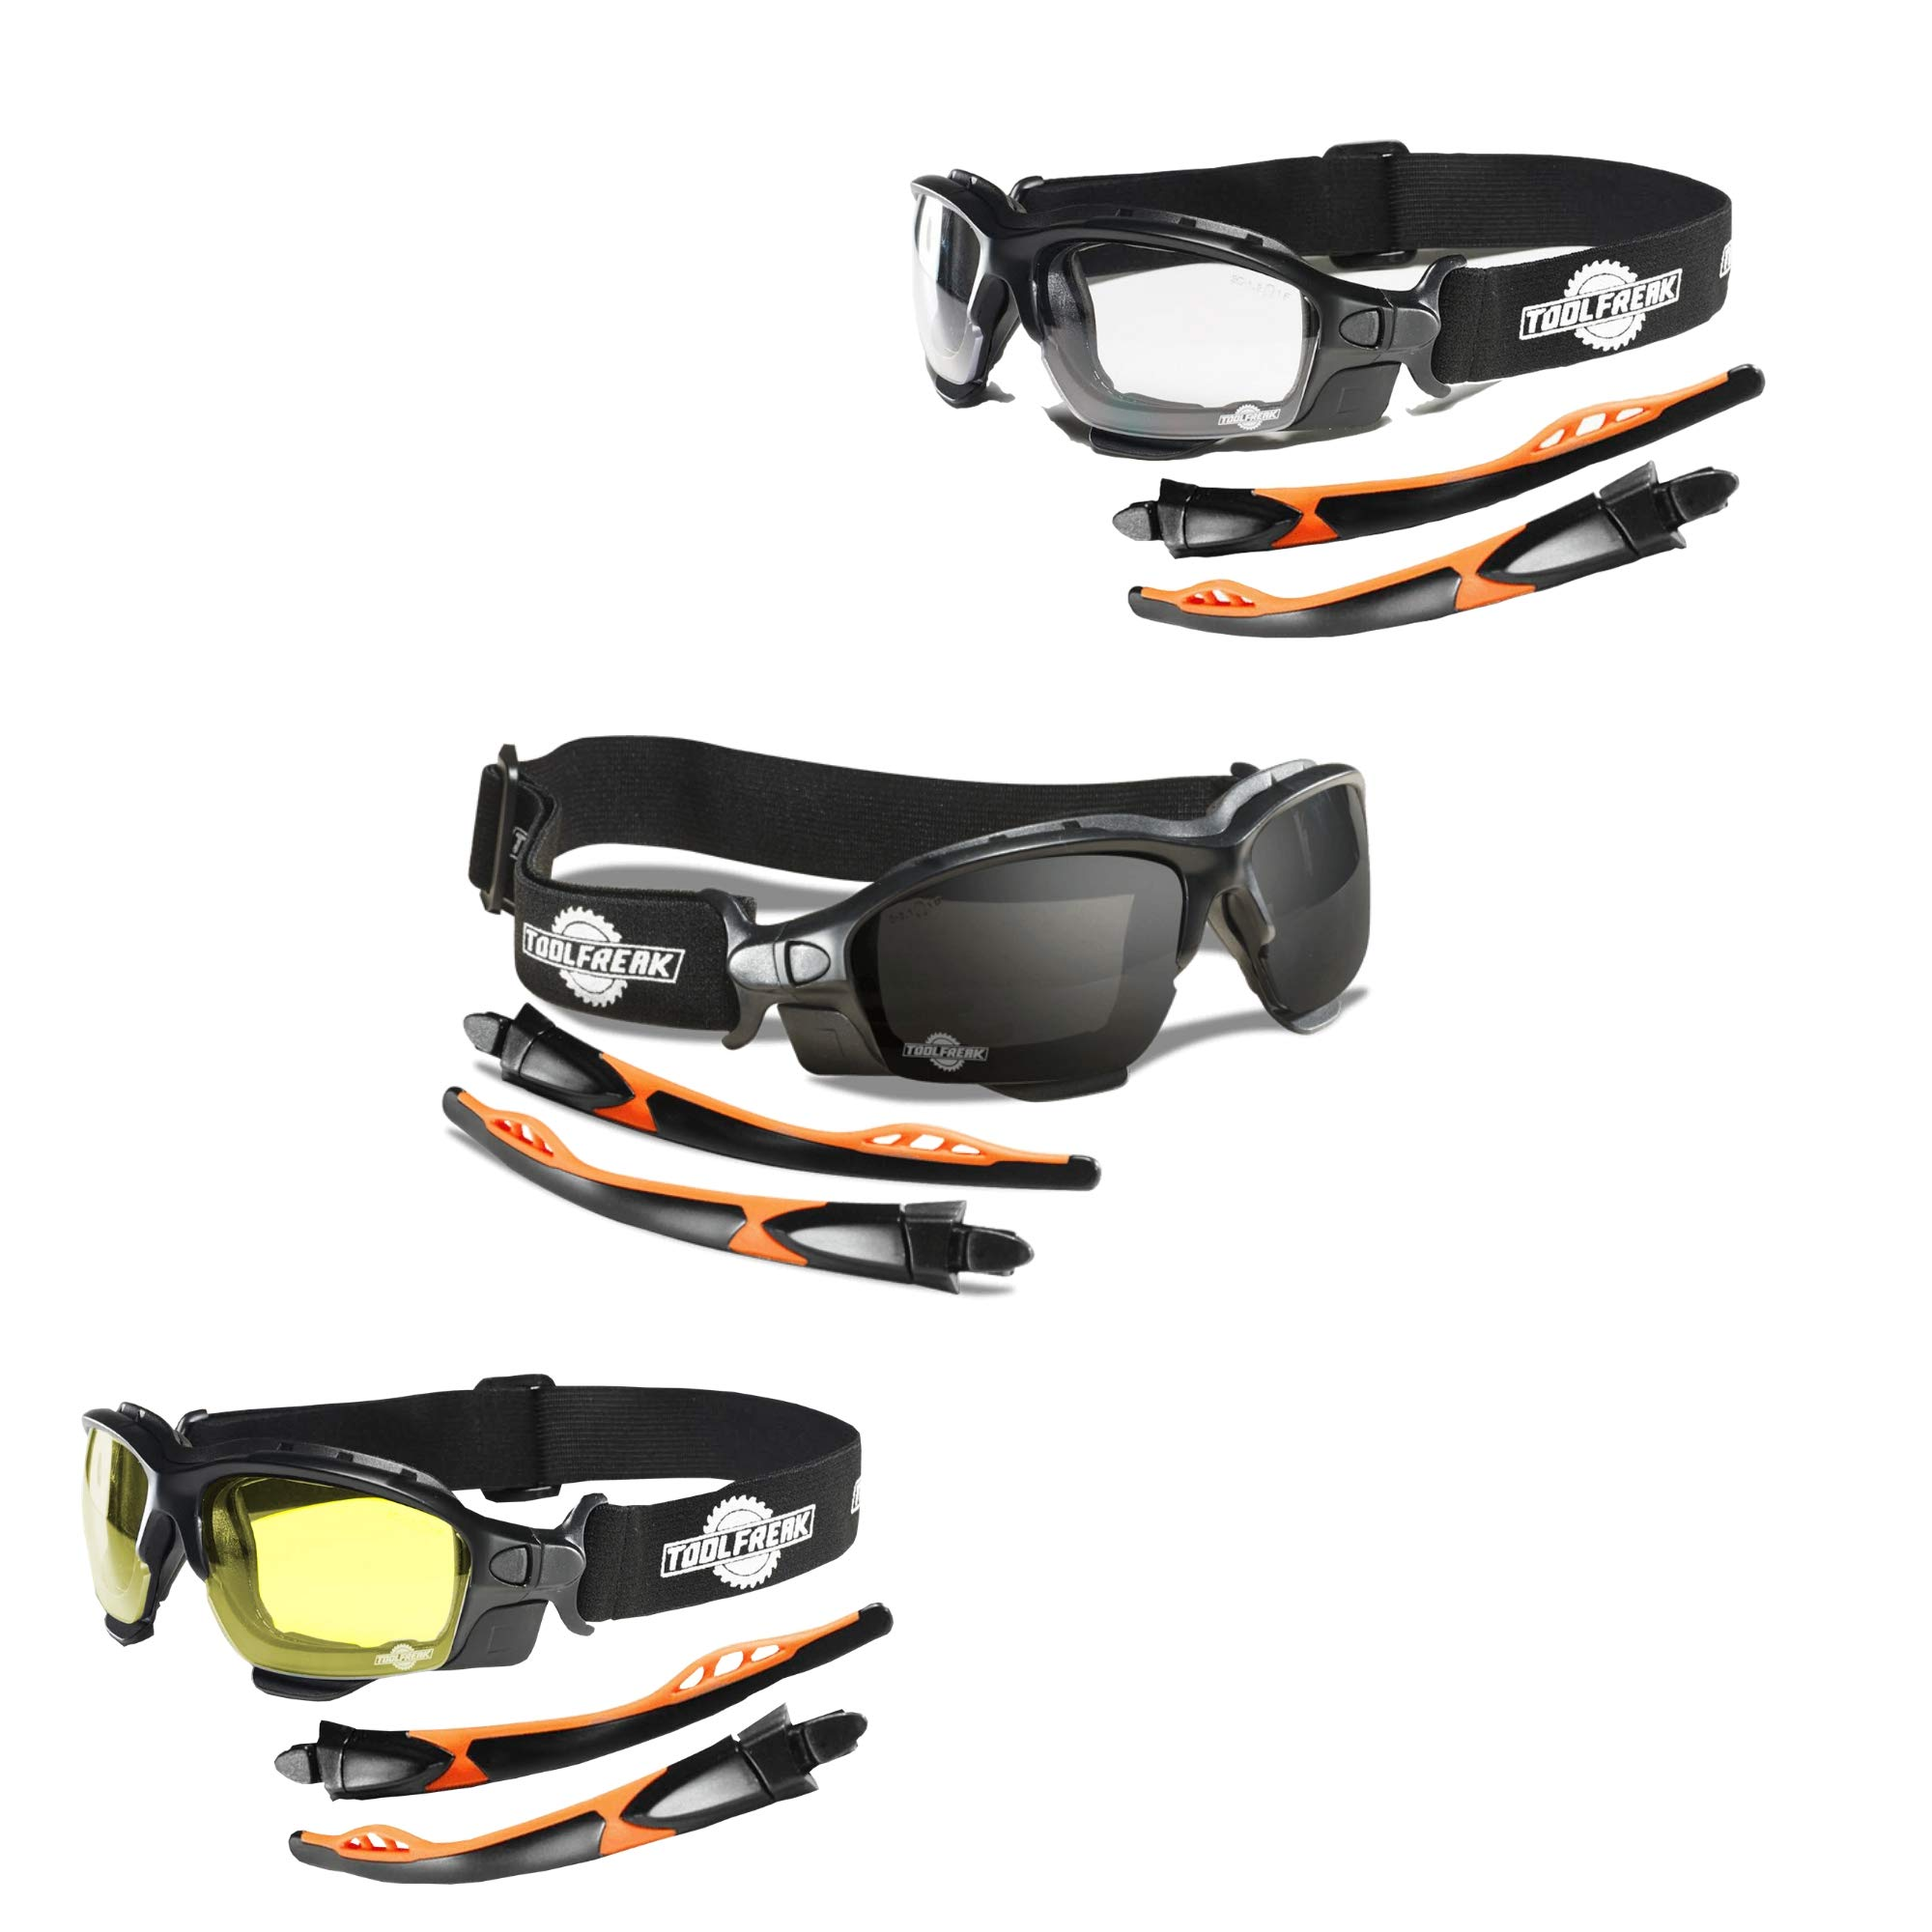 ToolFreak Spoggles Work and Sports Safety Glasses, Clear, Smoke and Yellow Tinted Lens Mega Bundle Offer, Foam Padded, ANSI z87 Rated with Impact and UV Protection by ToolFreak